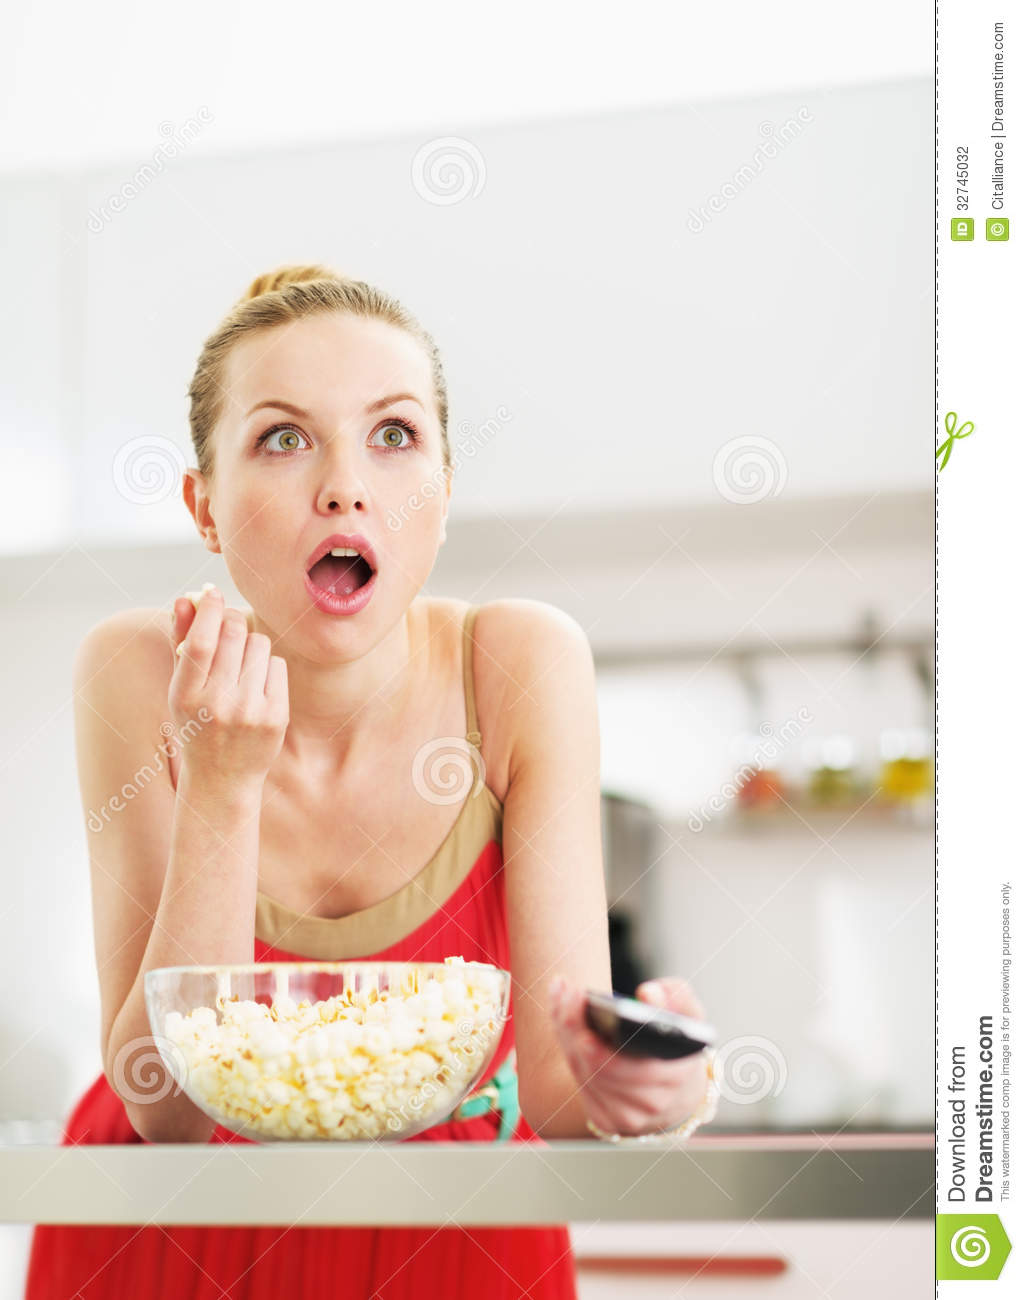 surprised-young-woman-eating-popcorn-wat